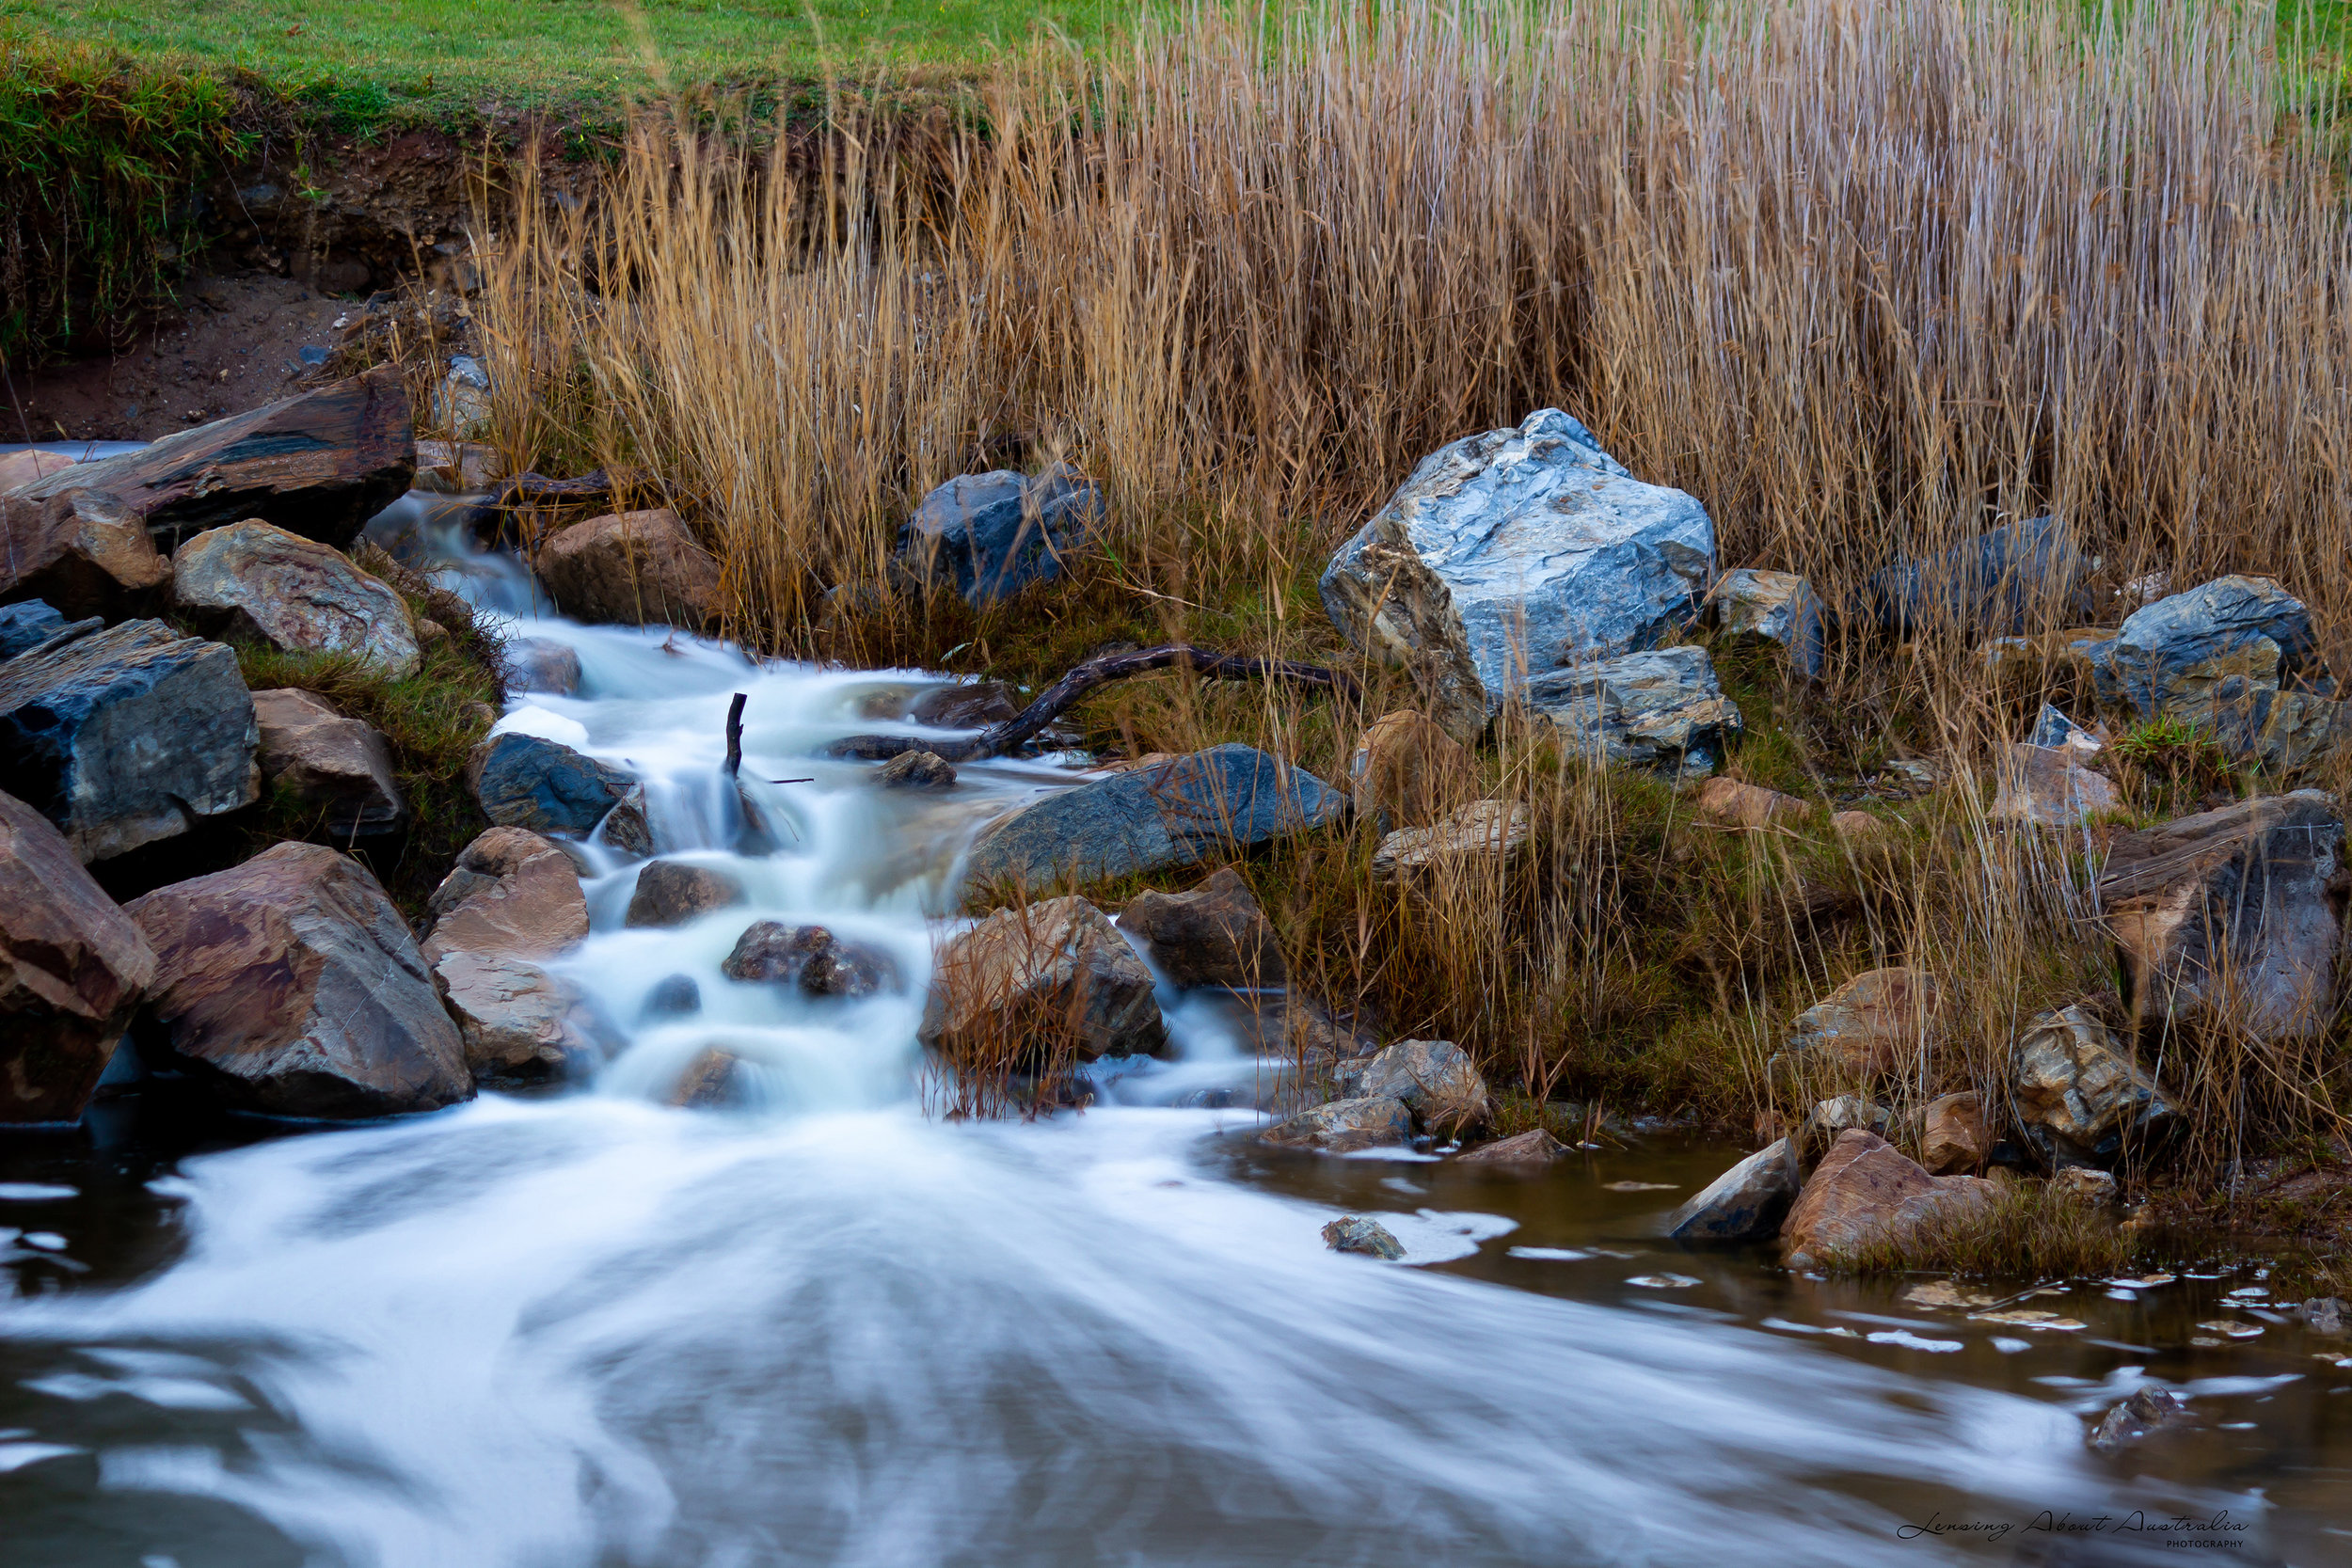 Slow shutter speed  of 4sec; f4.5; ISO 100. The slow shutter speed smooths out the water giving it more of a soft cloudy like appearance.